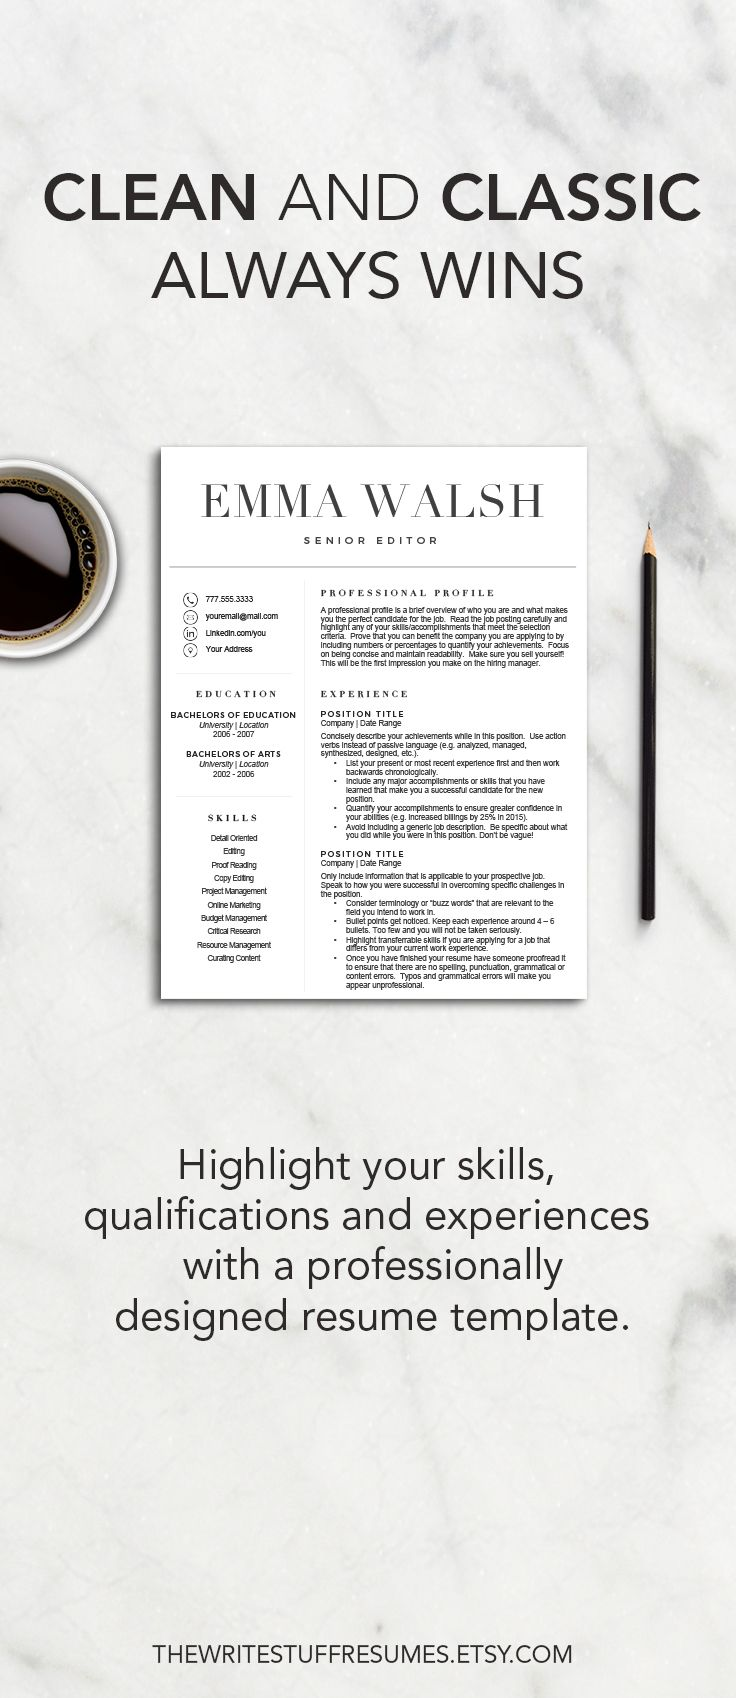 A Clean And Classic Resume Design Always Wins! Take The Stress Out Of  Rebuilding Your Resume And Simply Upgrade With A Professionally Designed  Template For ...  Classic Resume Template